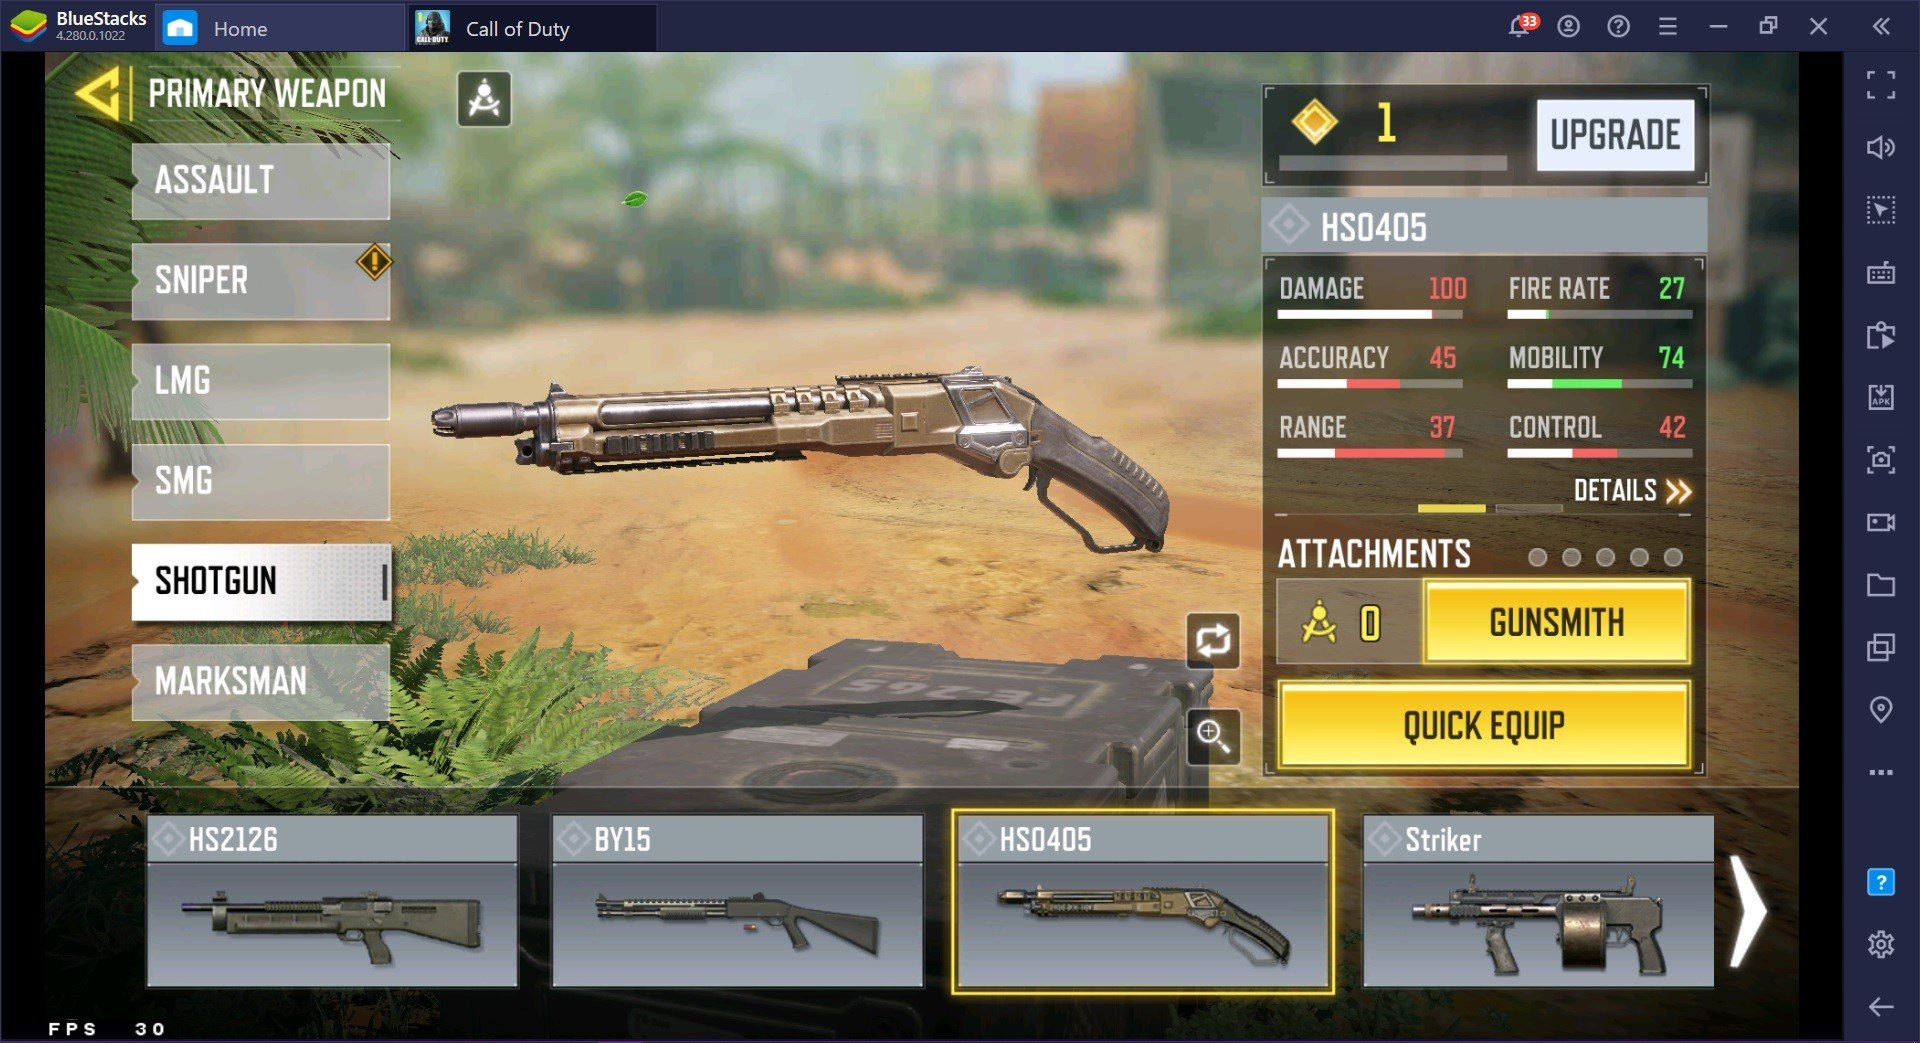 Call of Duty: Mobile Season 4 Weapon Guide for Battle Royale Games